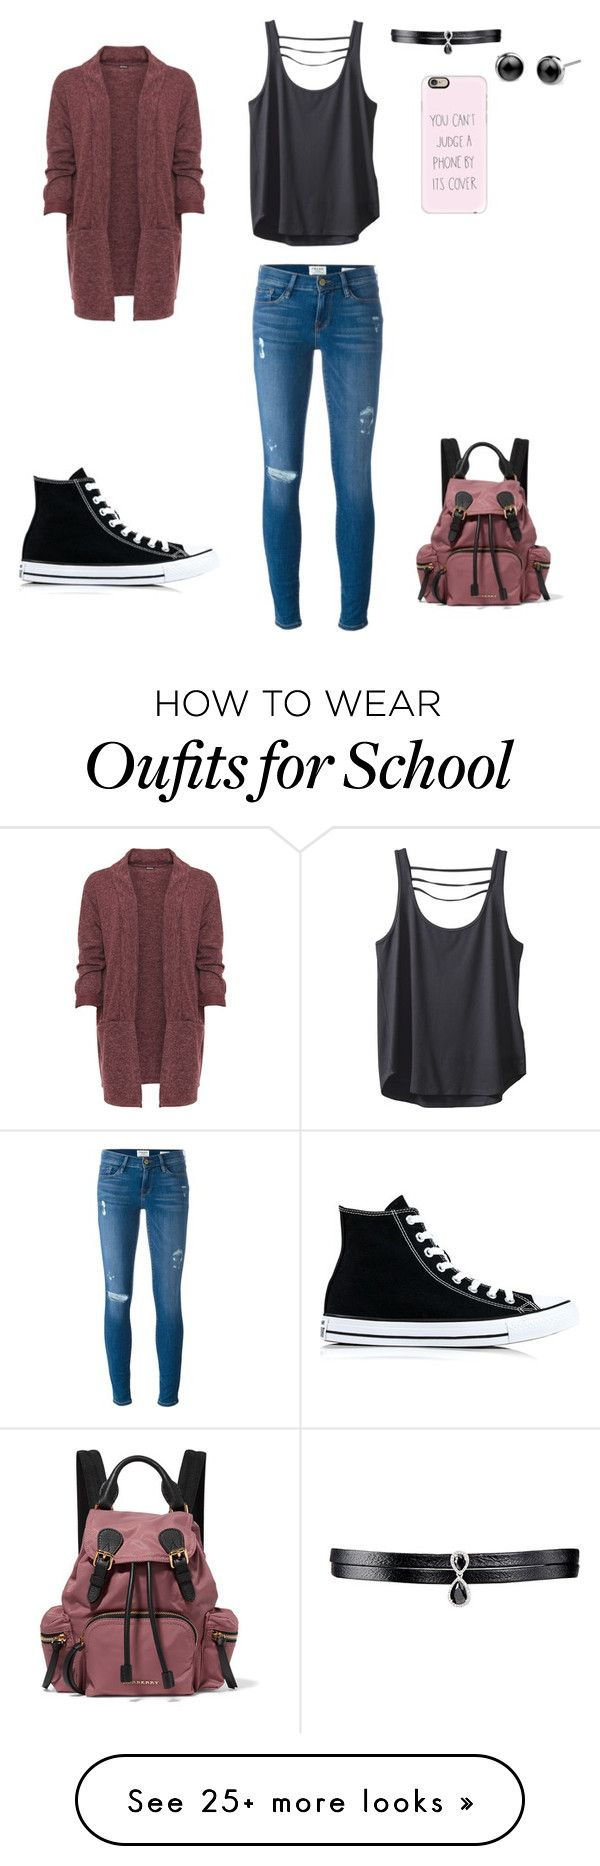 """Back to school"" by ear1993 on Polyvore featuring Kavu, WearAll, Frame Denim, Converse, Burberry, Fallon, Casetify and plus size clothing"